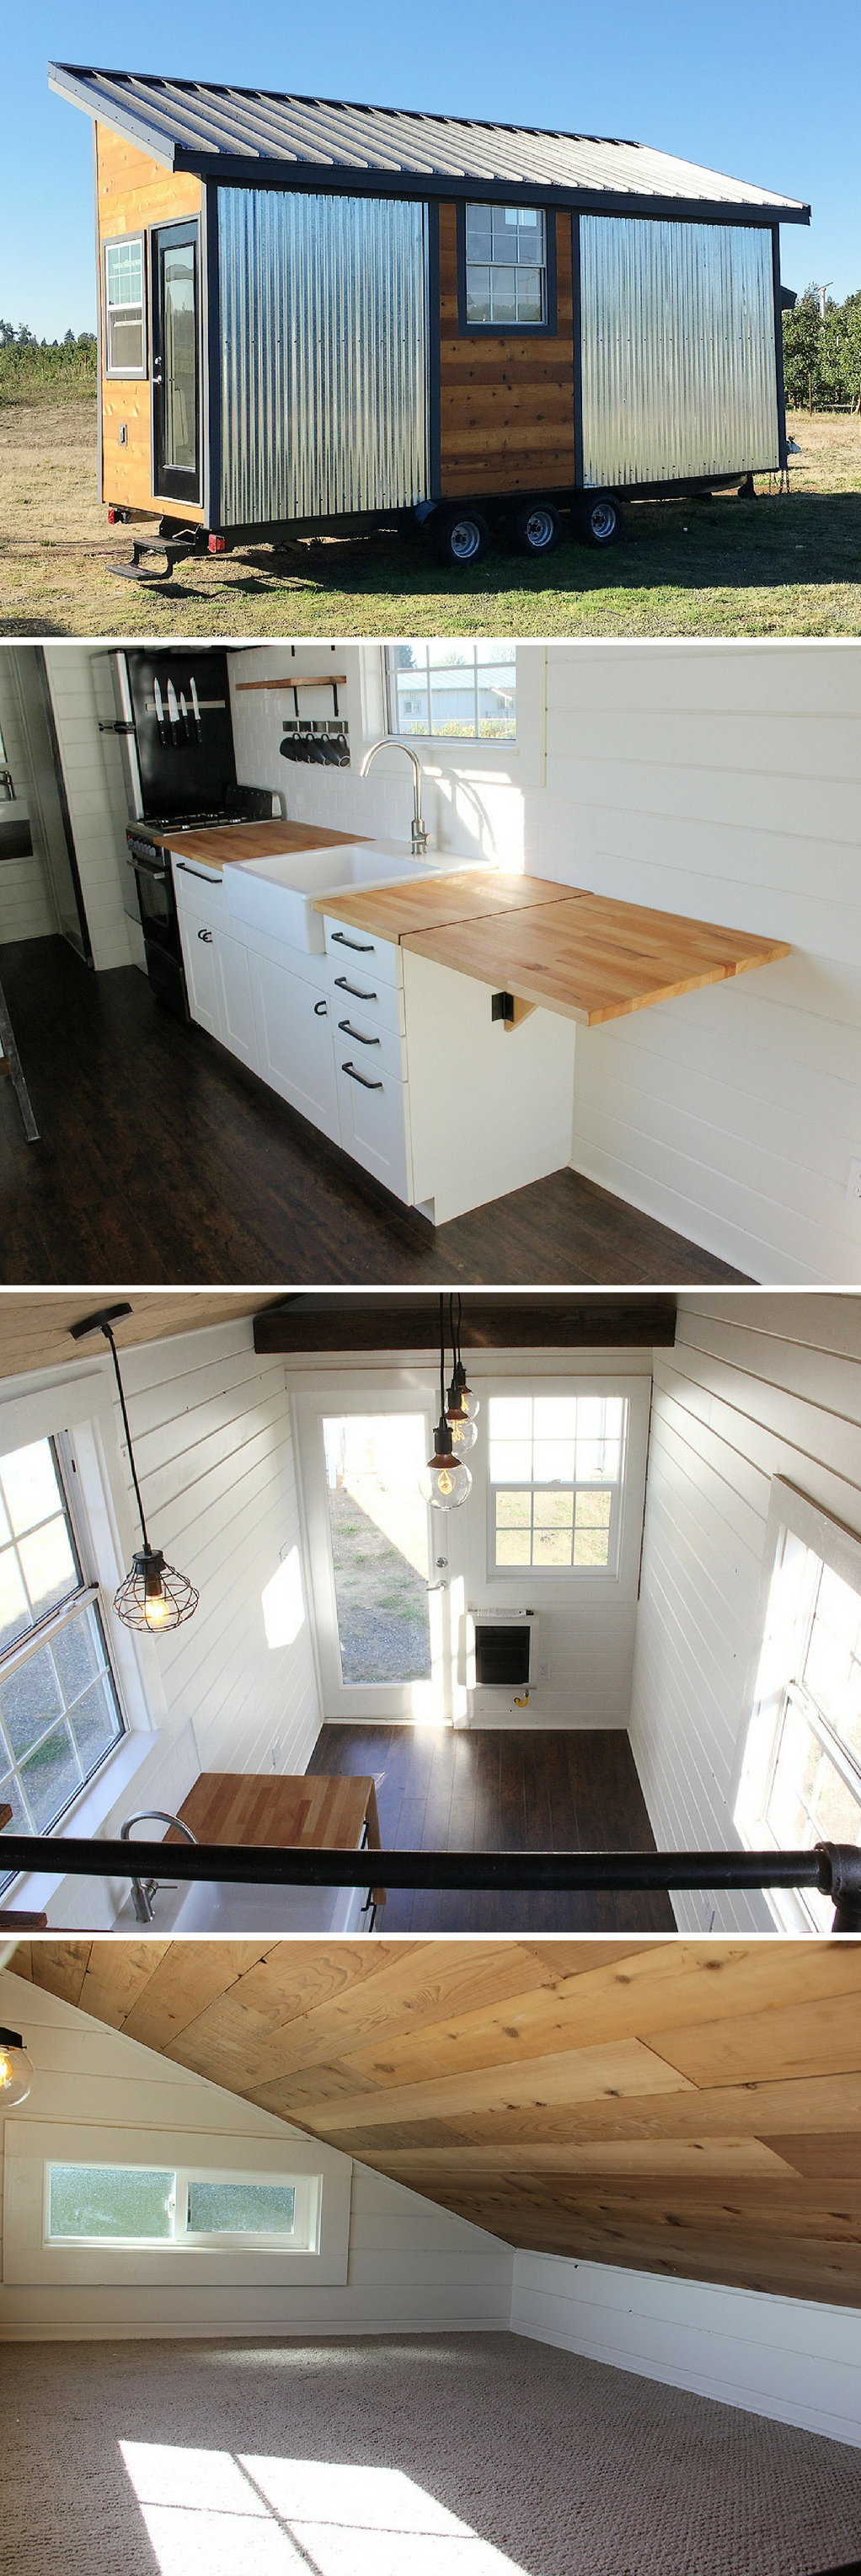 Modern Rustic Tiny Home in Bellingham Modern tiny house